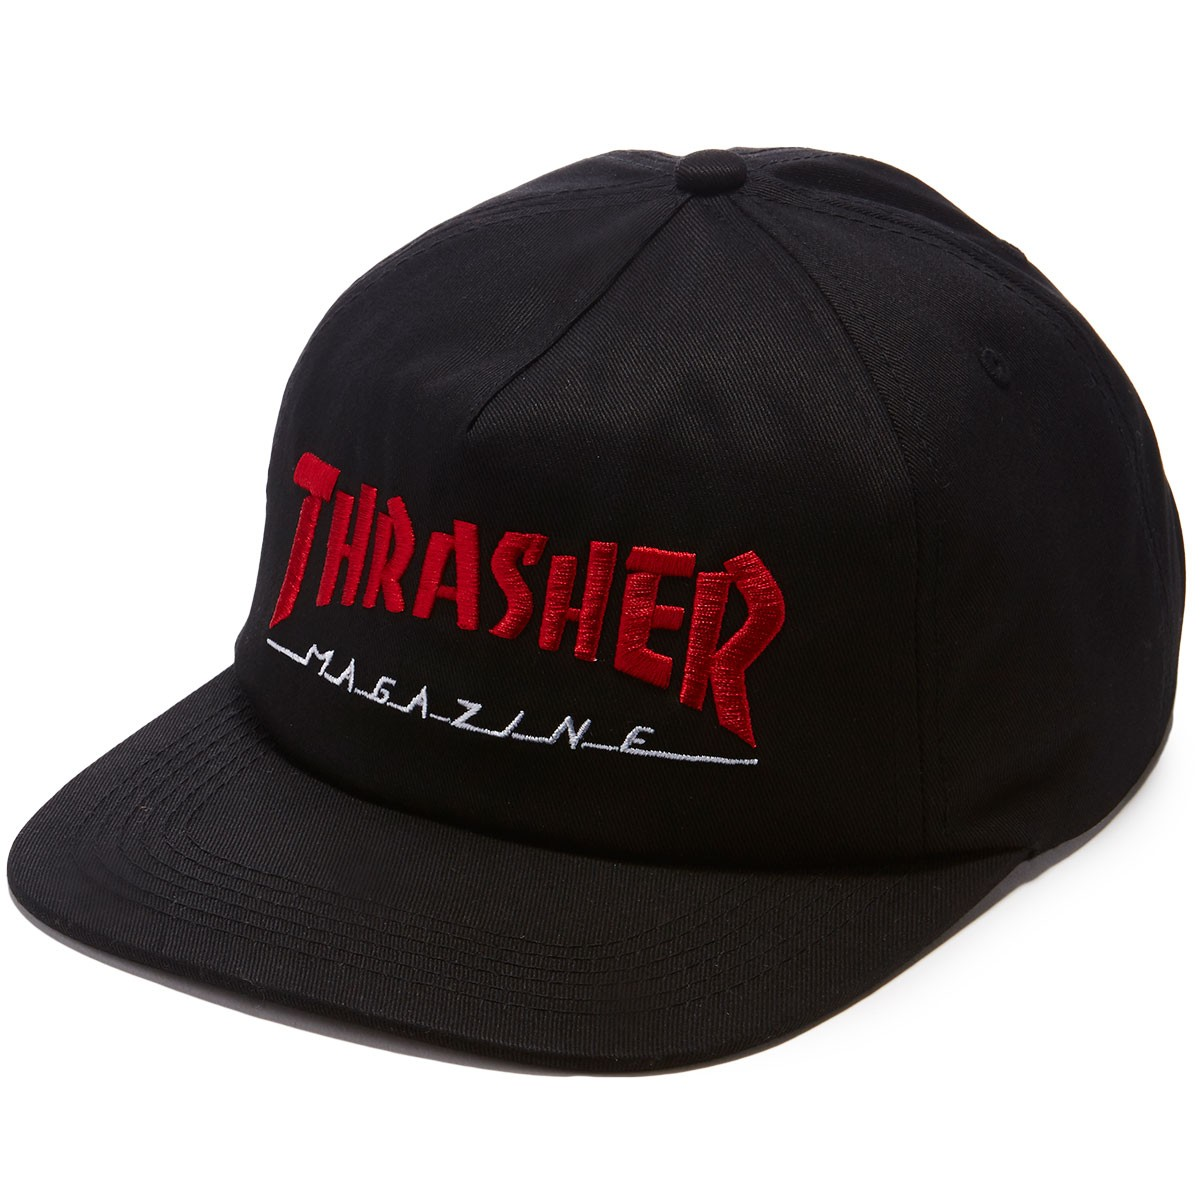 Thrasher Cap Magazine Two Tone Unstructured Black Snapback Skateboard Mag Hat